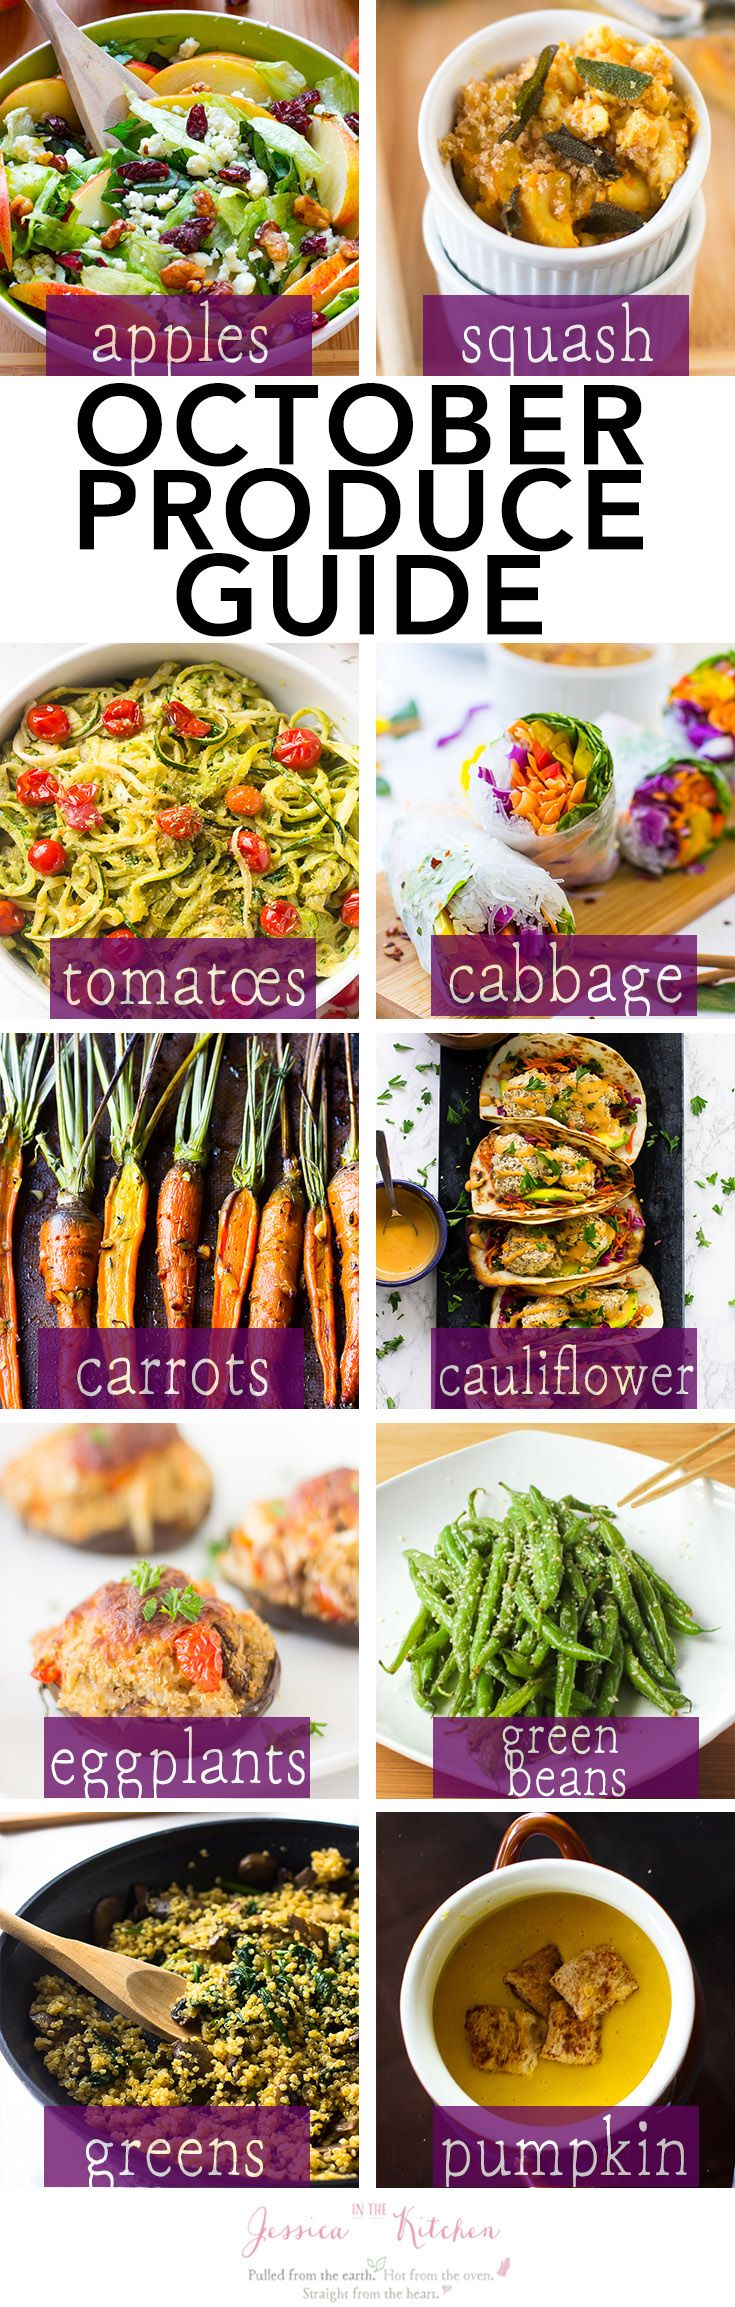 What's in Season: October Produce Guide. Here's a list of what you should cook this October based on what produce is in season for fresh, delicious and healthy recipes! via http://jessicainthekitchen.com